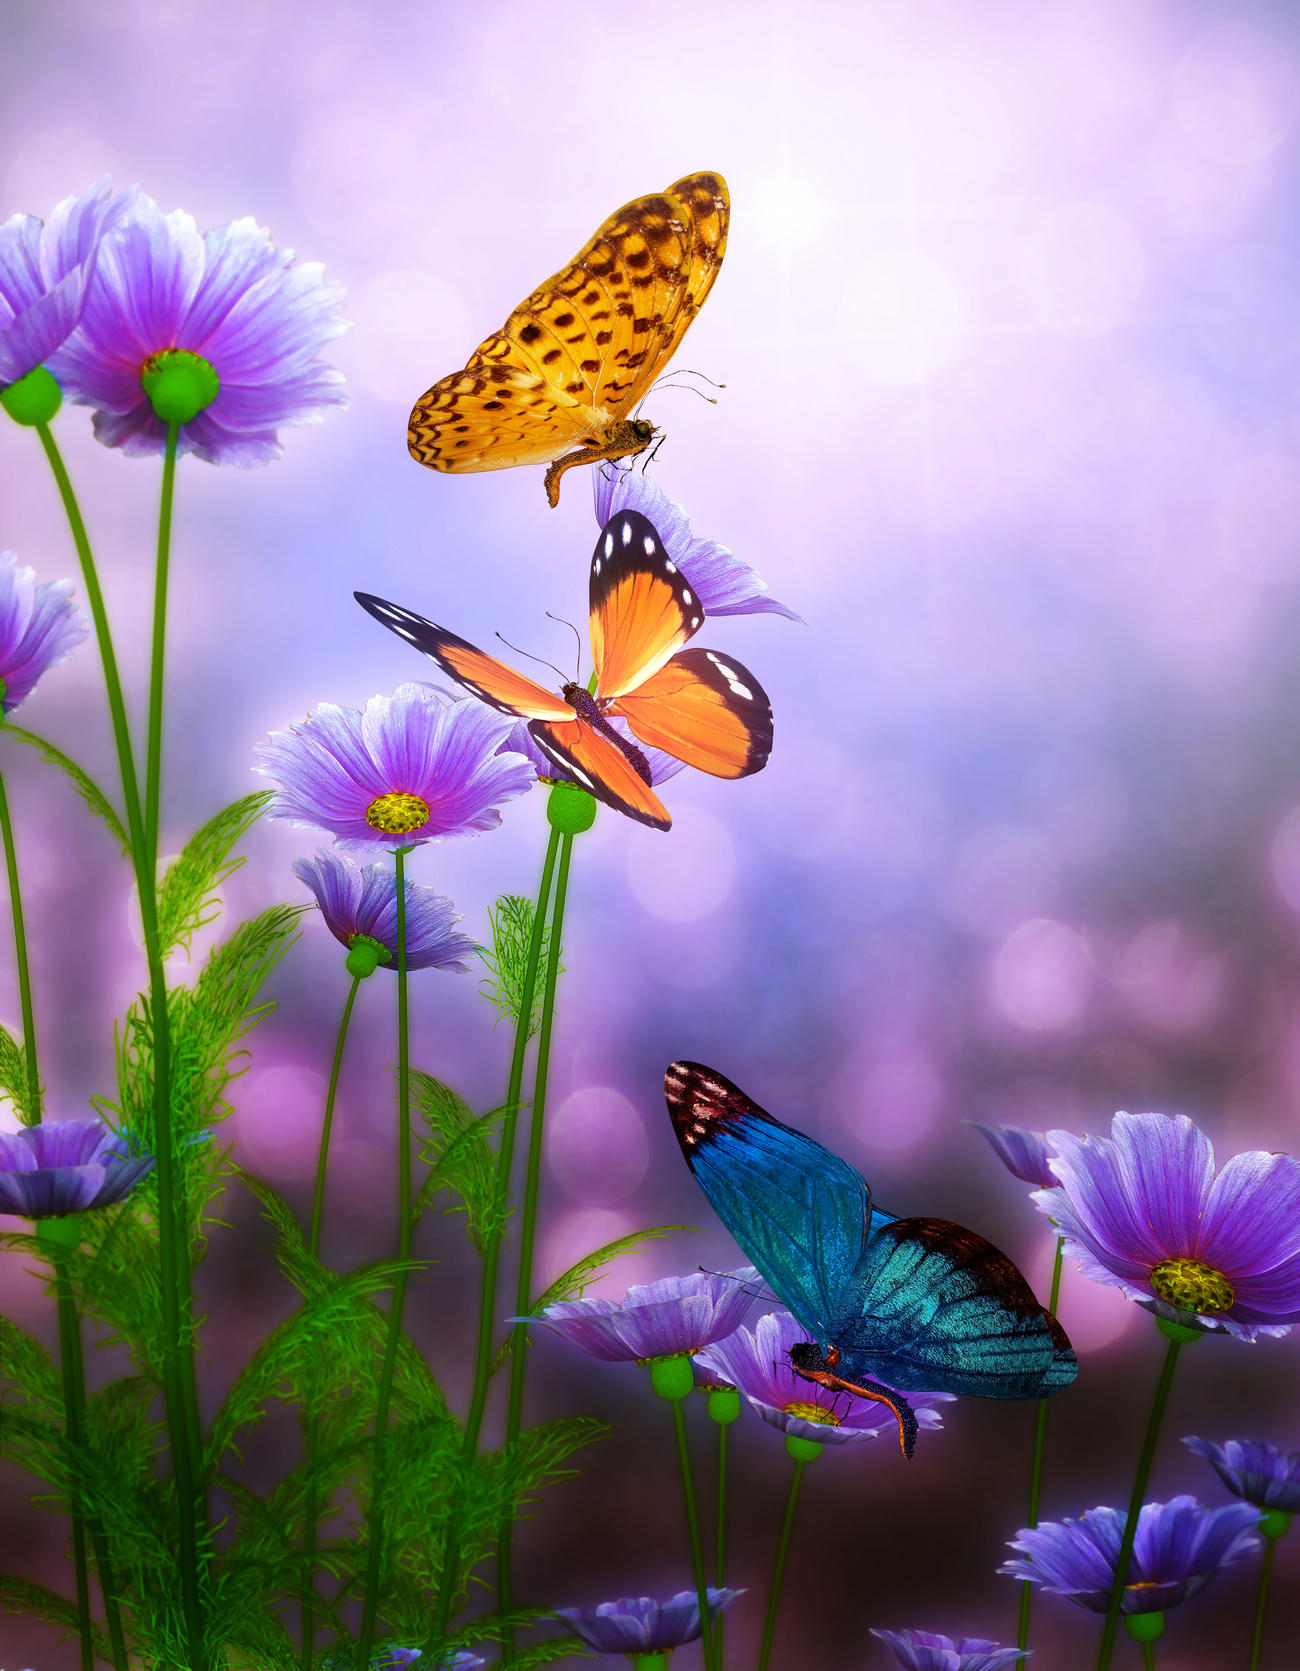 Butterflies by Calico